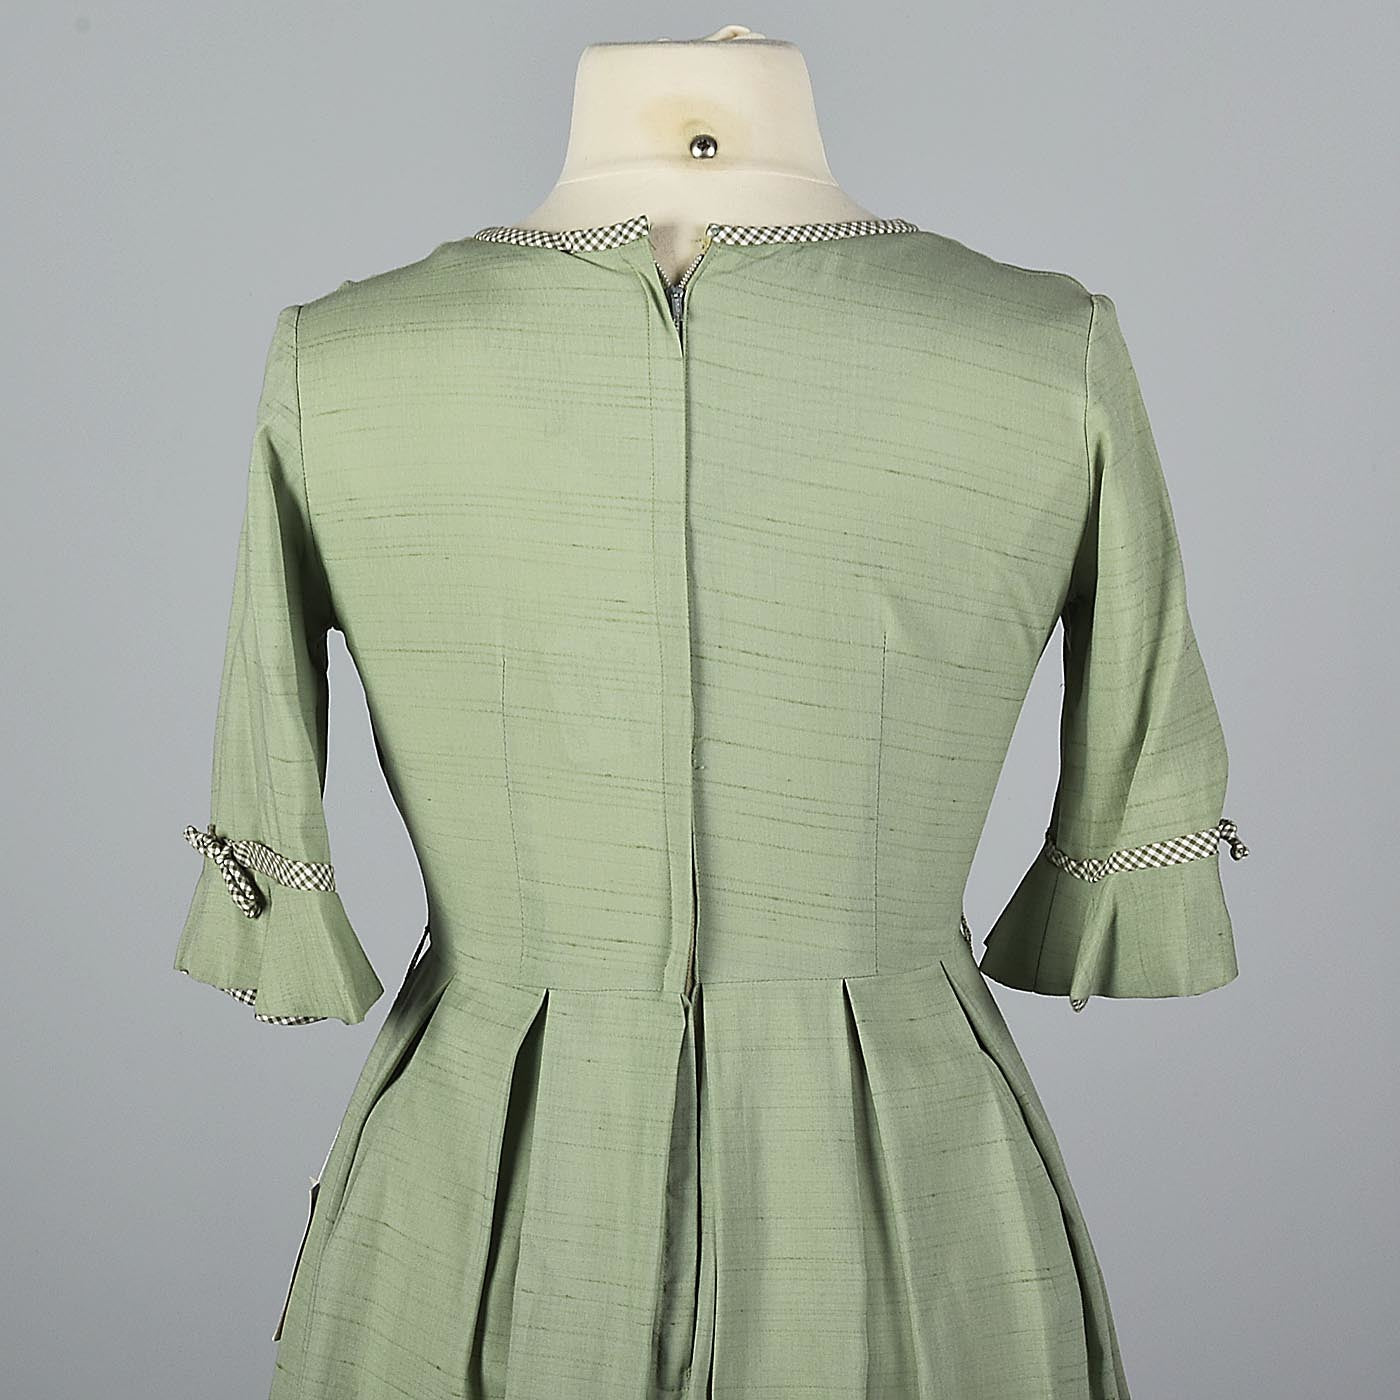 1950s Sage Green Day Dress with Gingham Trim